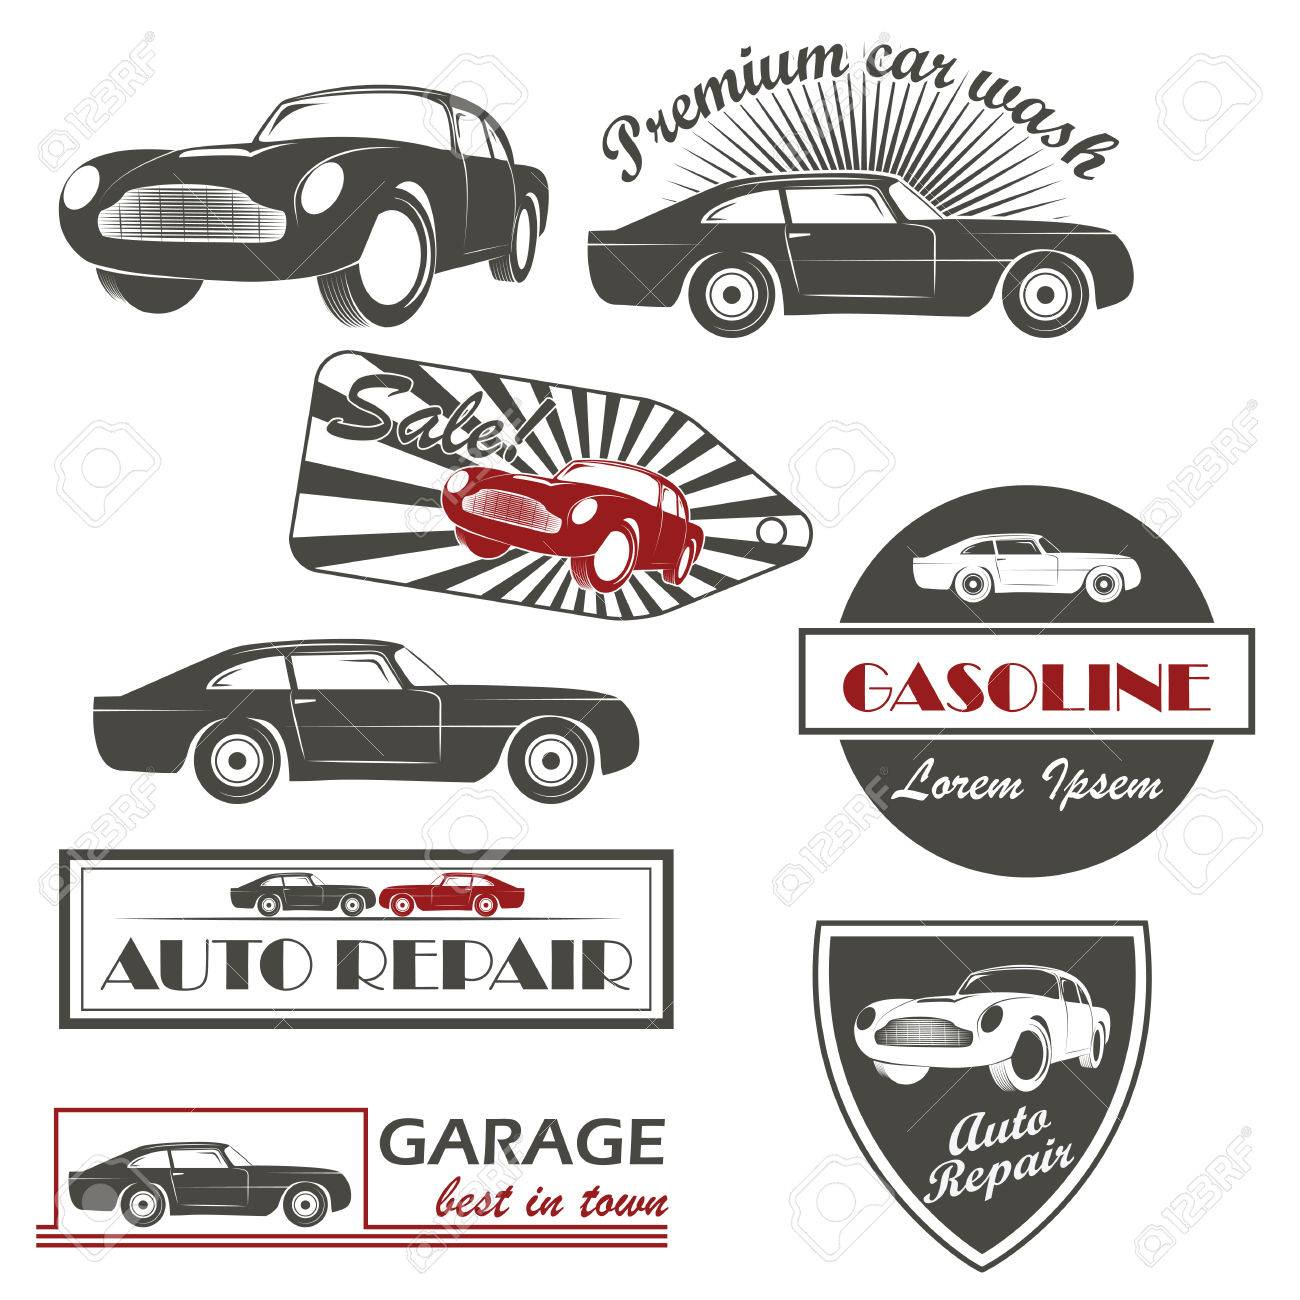 Car Service And Car Sale Retro Labels And Icons Royalty Free ...